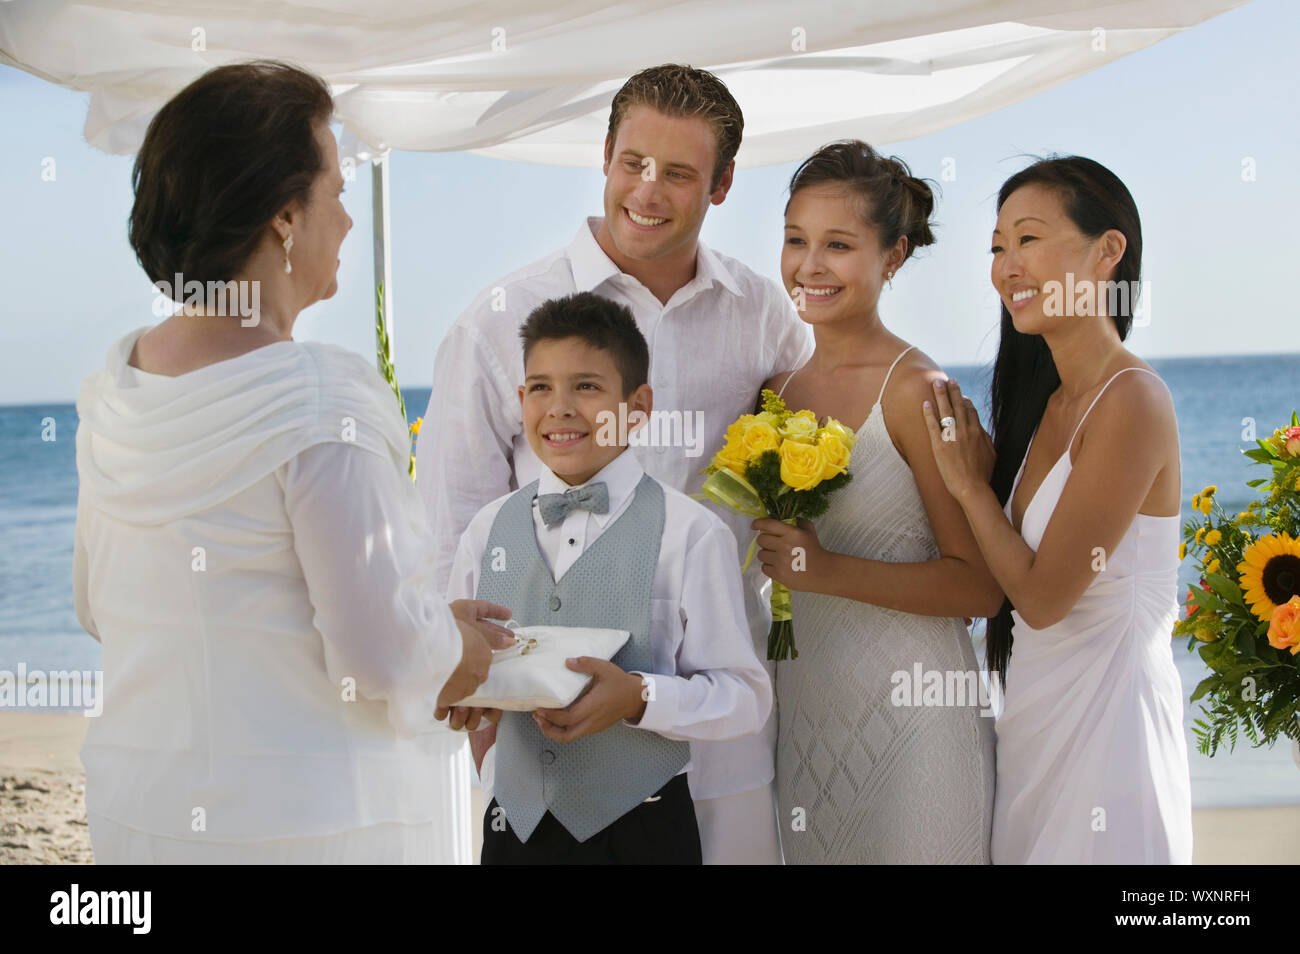 Bride and Groom on Beach With Family Stock Photo